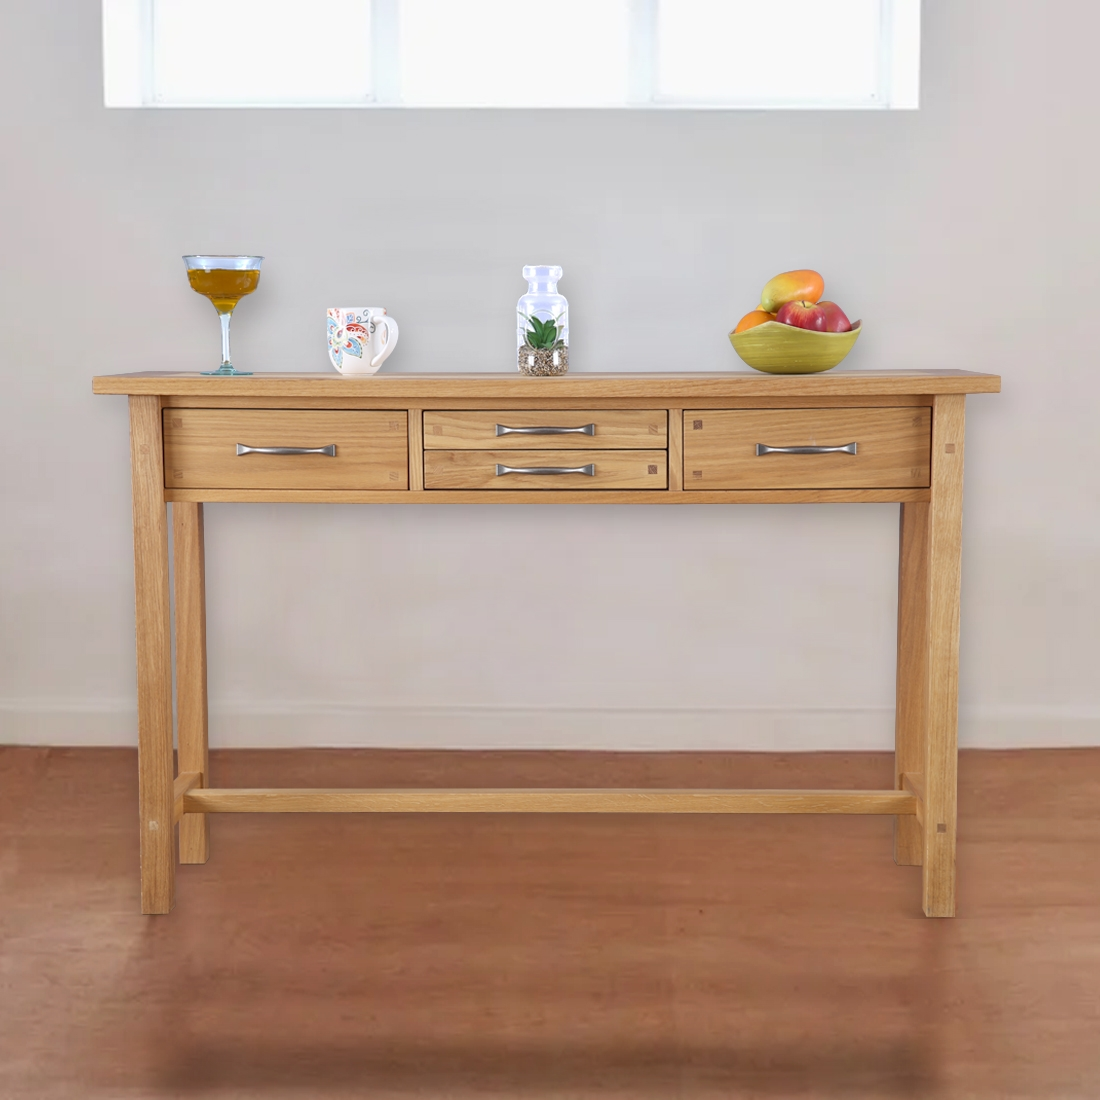 Buy Laura Ashley Milton Solid Wood Console Table In Oiled Oak Finish Color By Hometown Online At Best Price Hometown